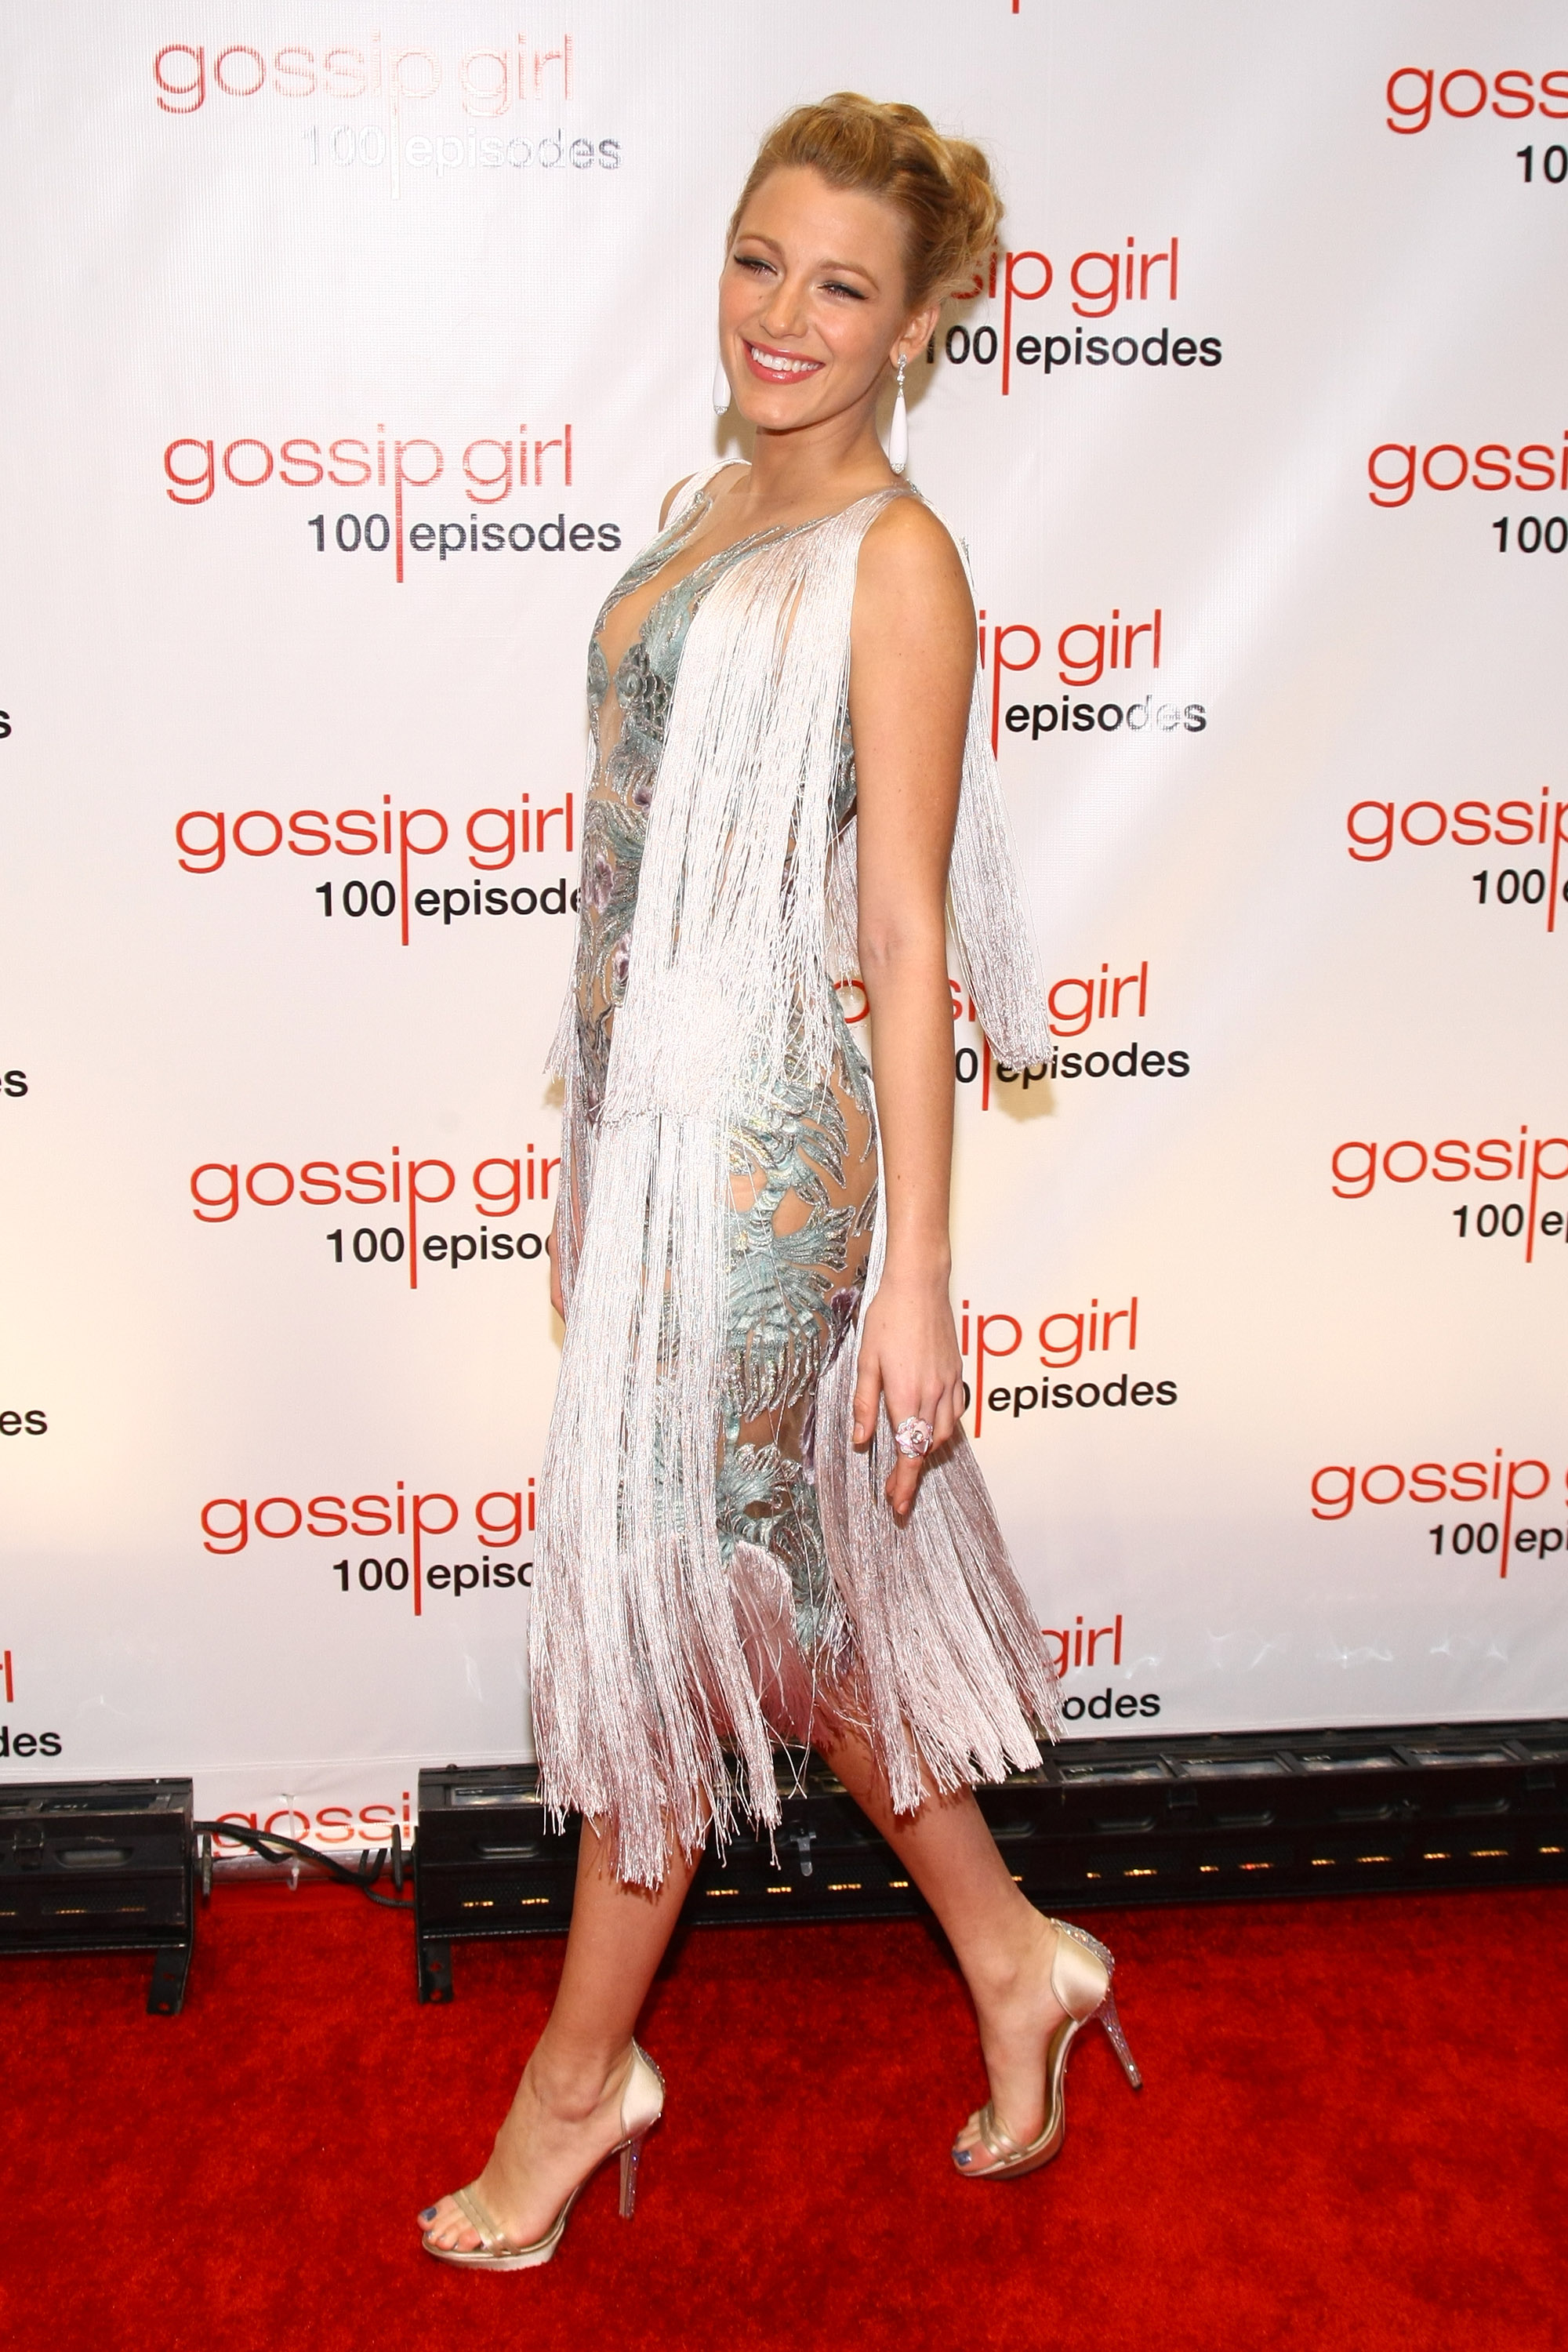 Blake Lively hit the red carpet solo for the show's 100th episode celebration in November 2011.